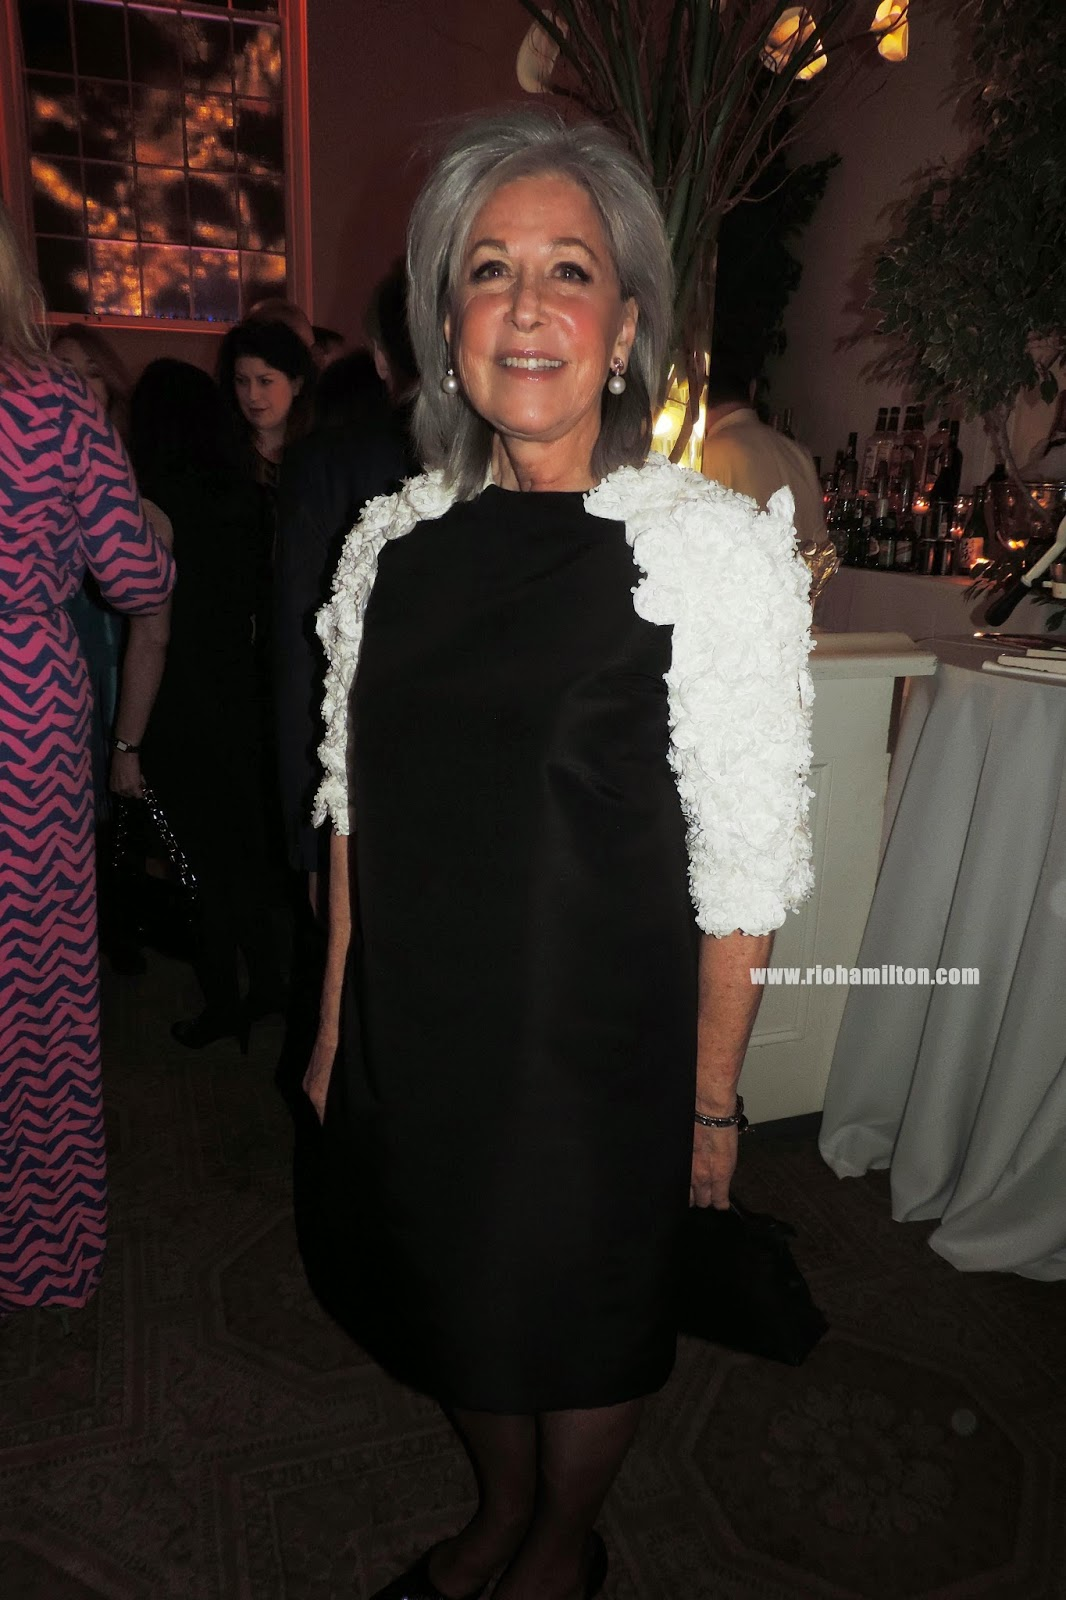 new york school of interior design cocktail party and awards interior designer susan zises green pretty lady in a pretty dress